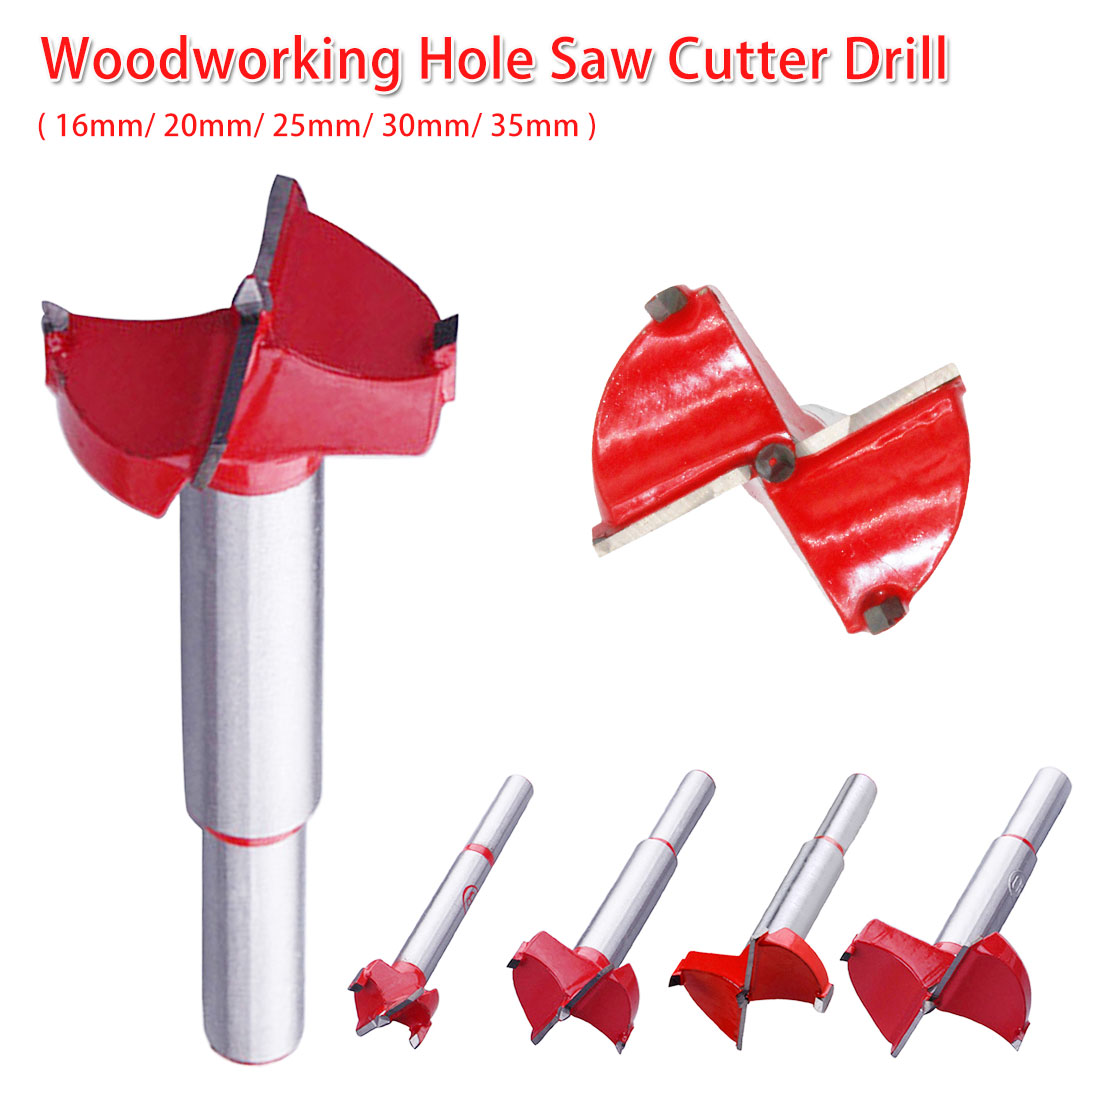 Alloy Hole Opener Drill Bit Professional Forstner Woodworking Hole Saw Cutter Flat Wing Drill 16-35mm For Wood Panel/ Cabinet